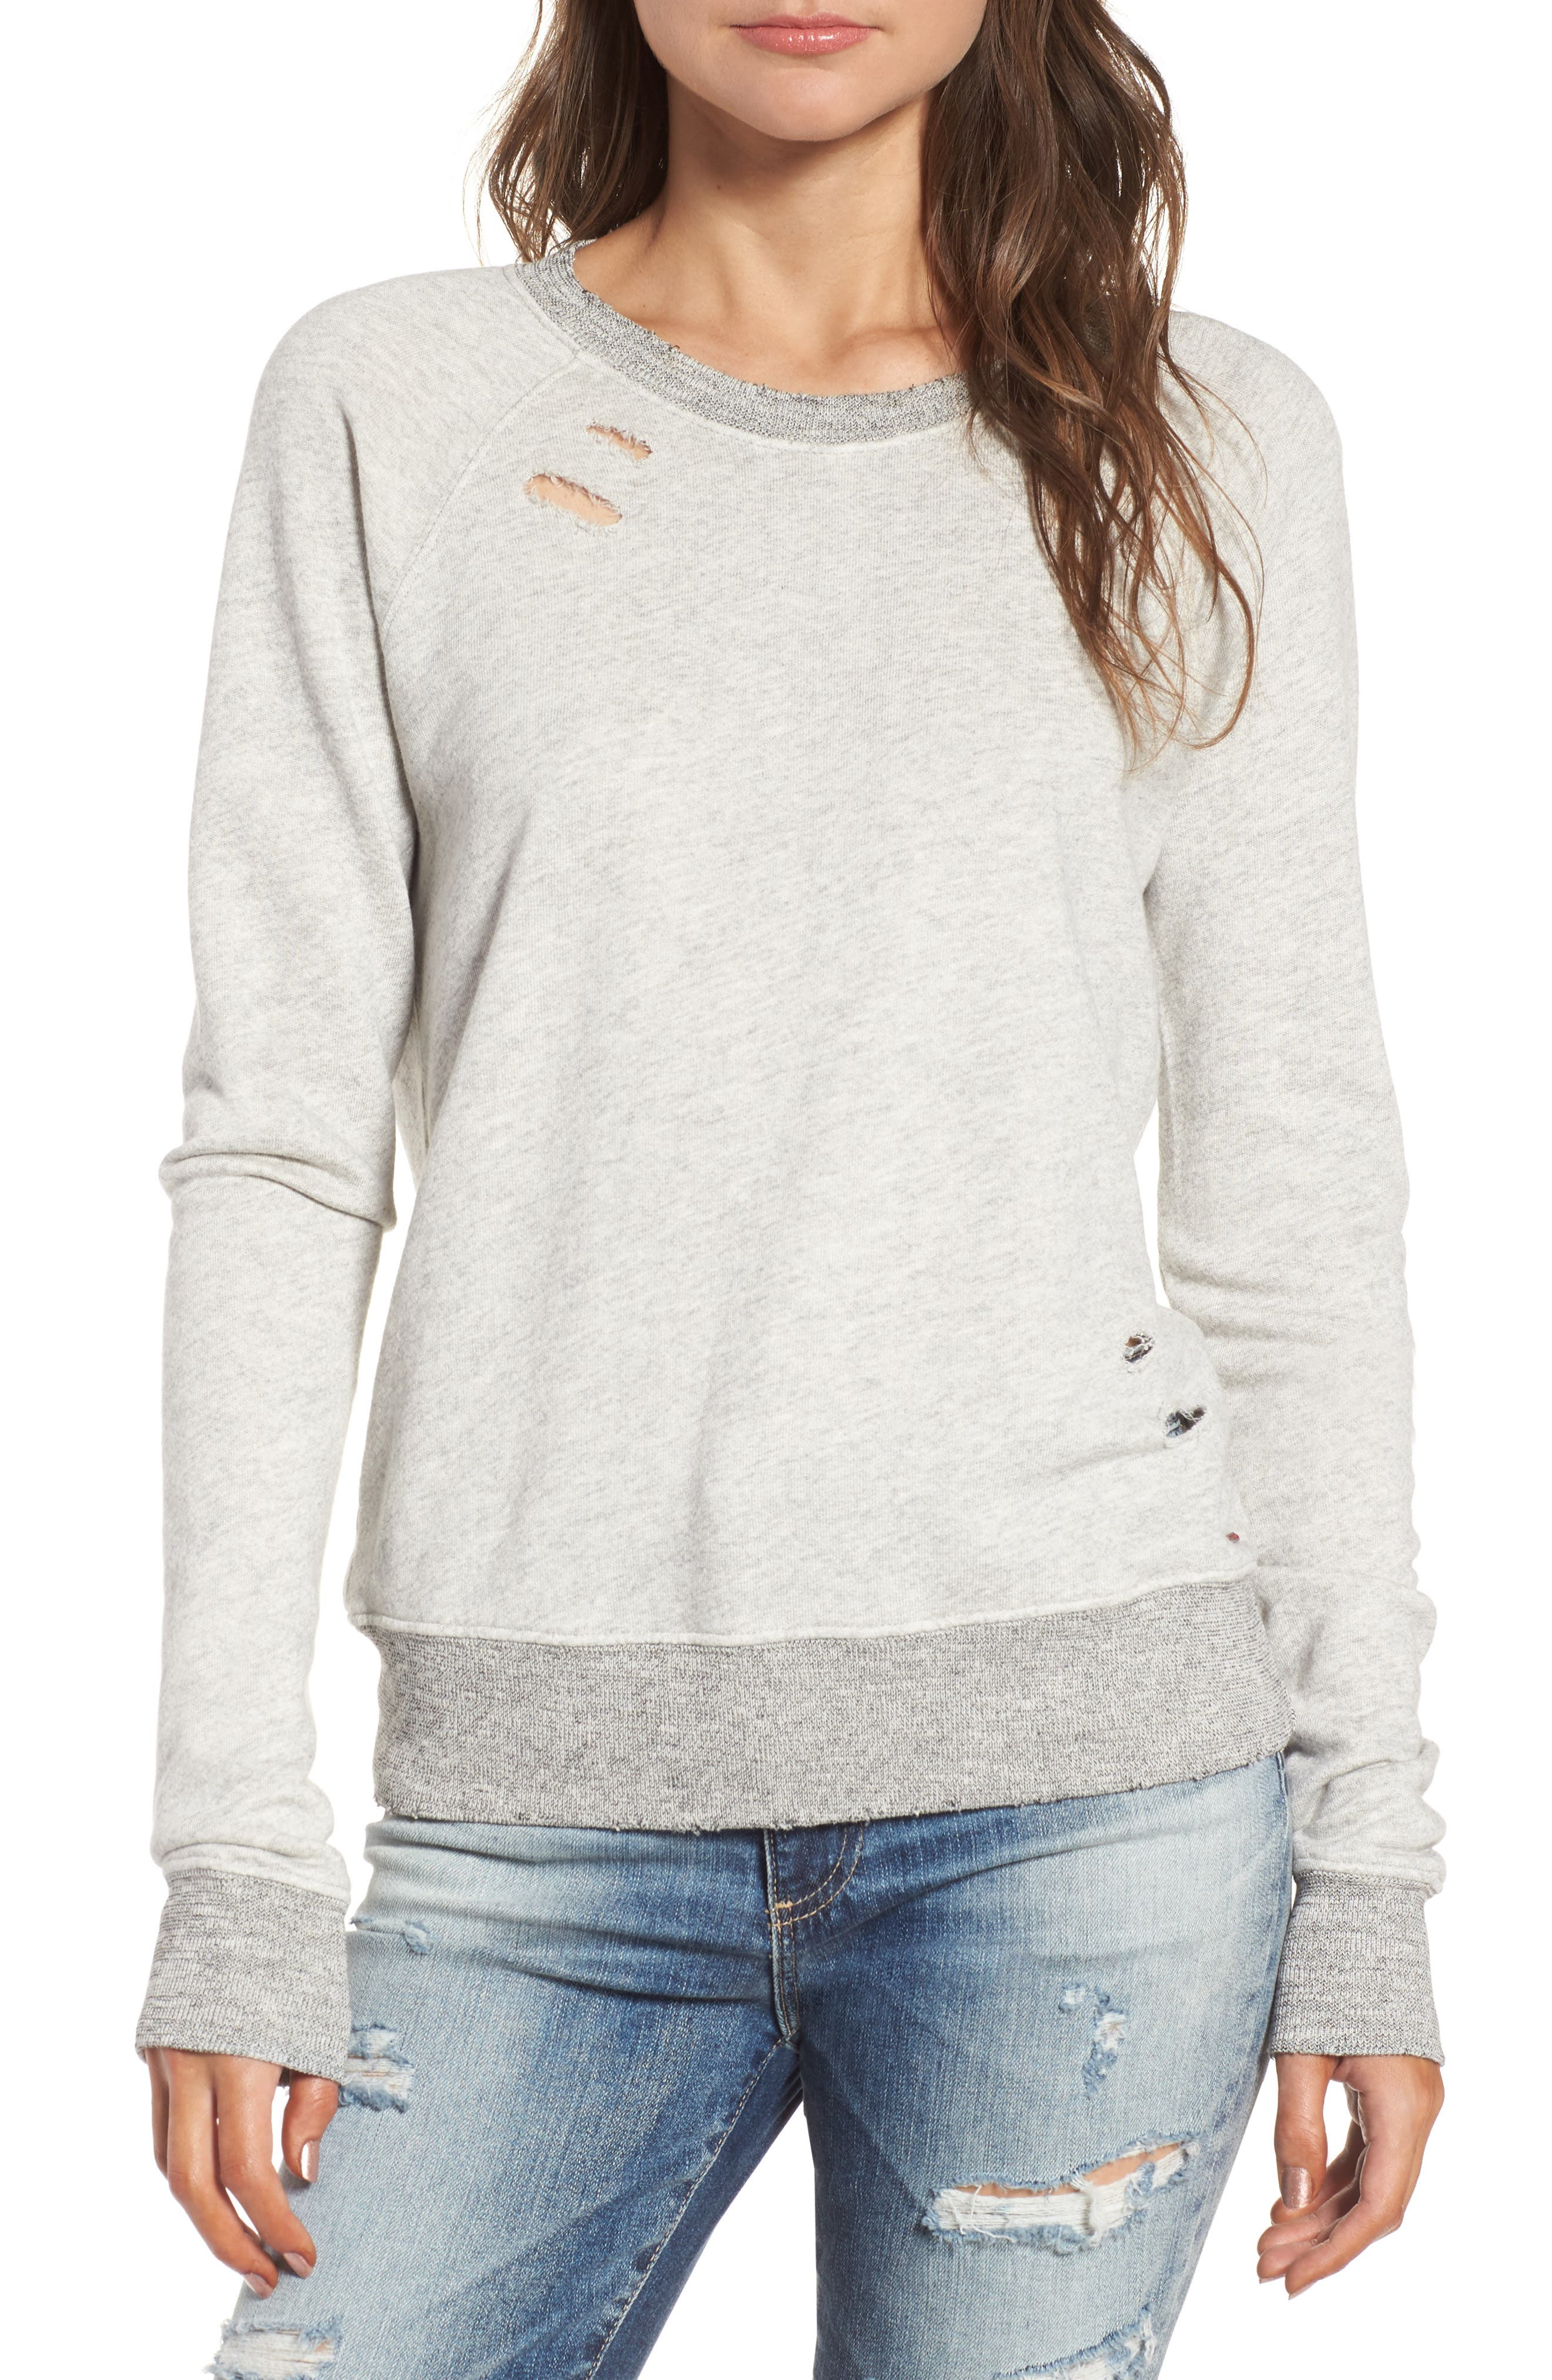 Main Image - n:PHILANTHROPY Belize Deconstructed Sweatshirt